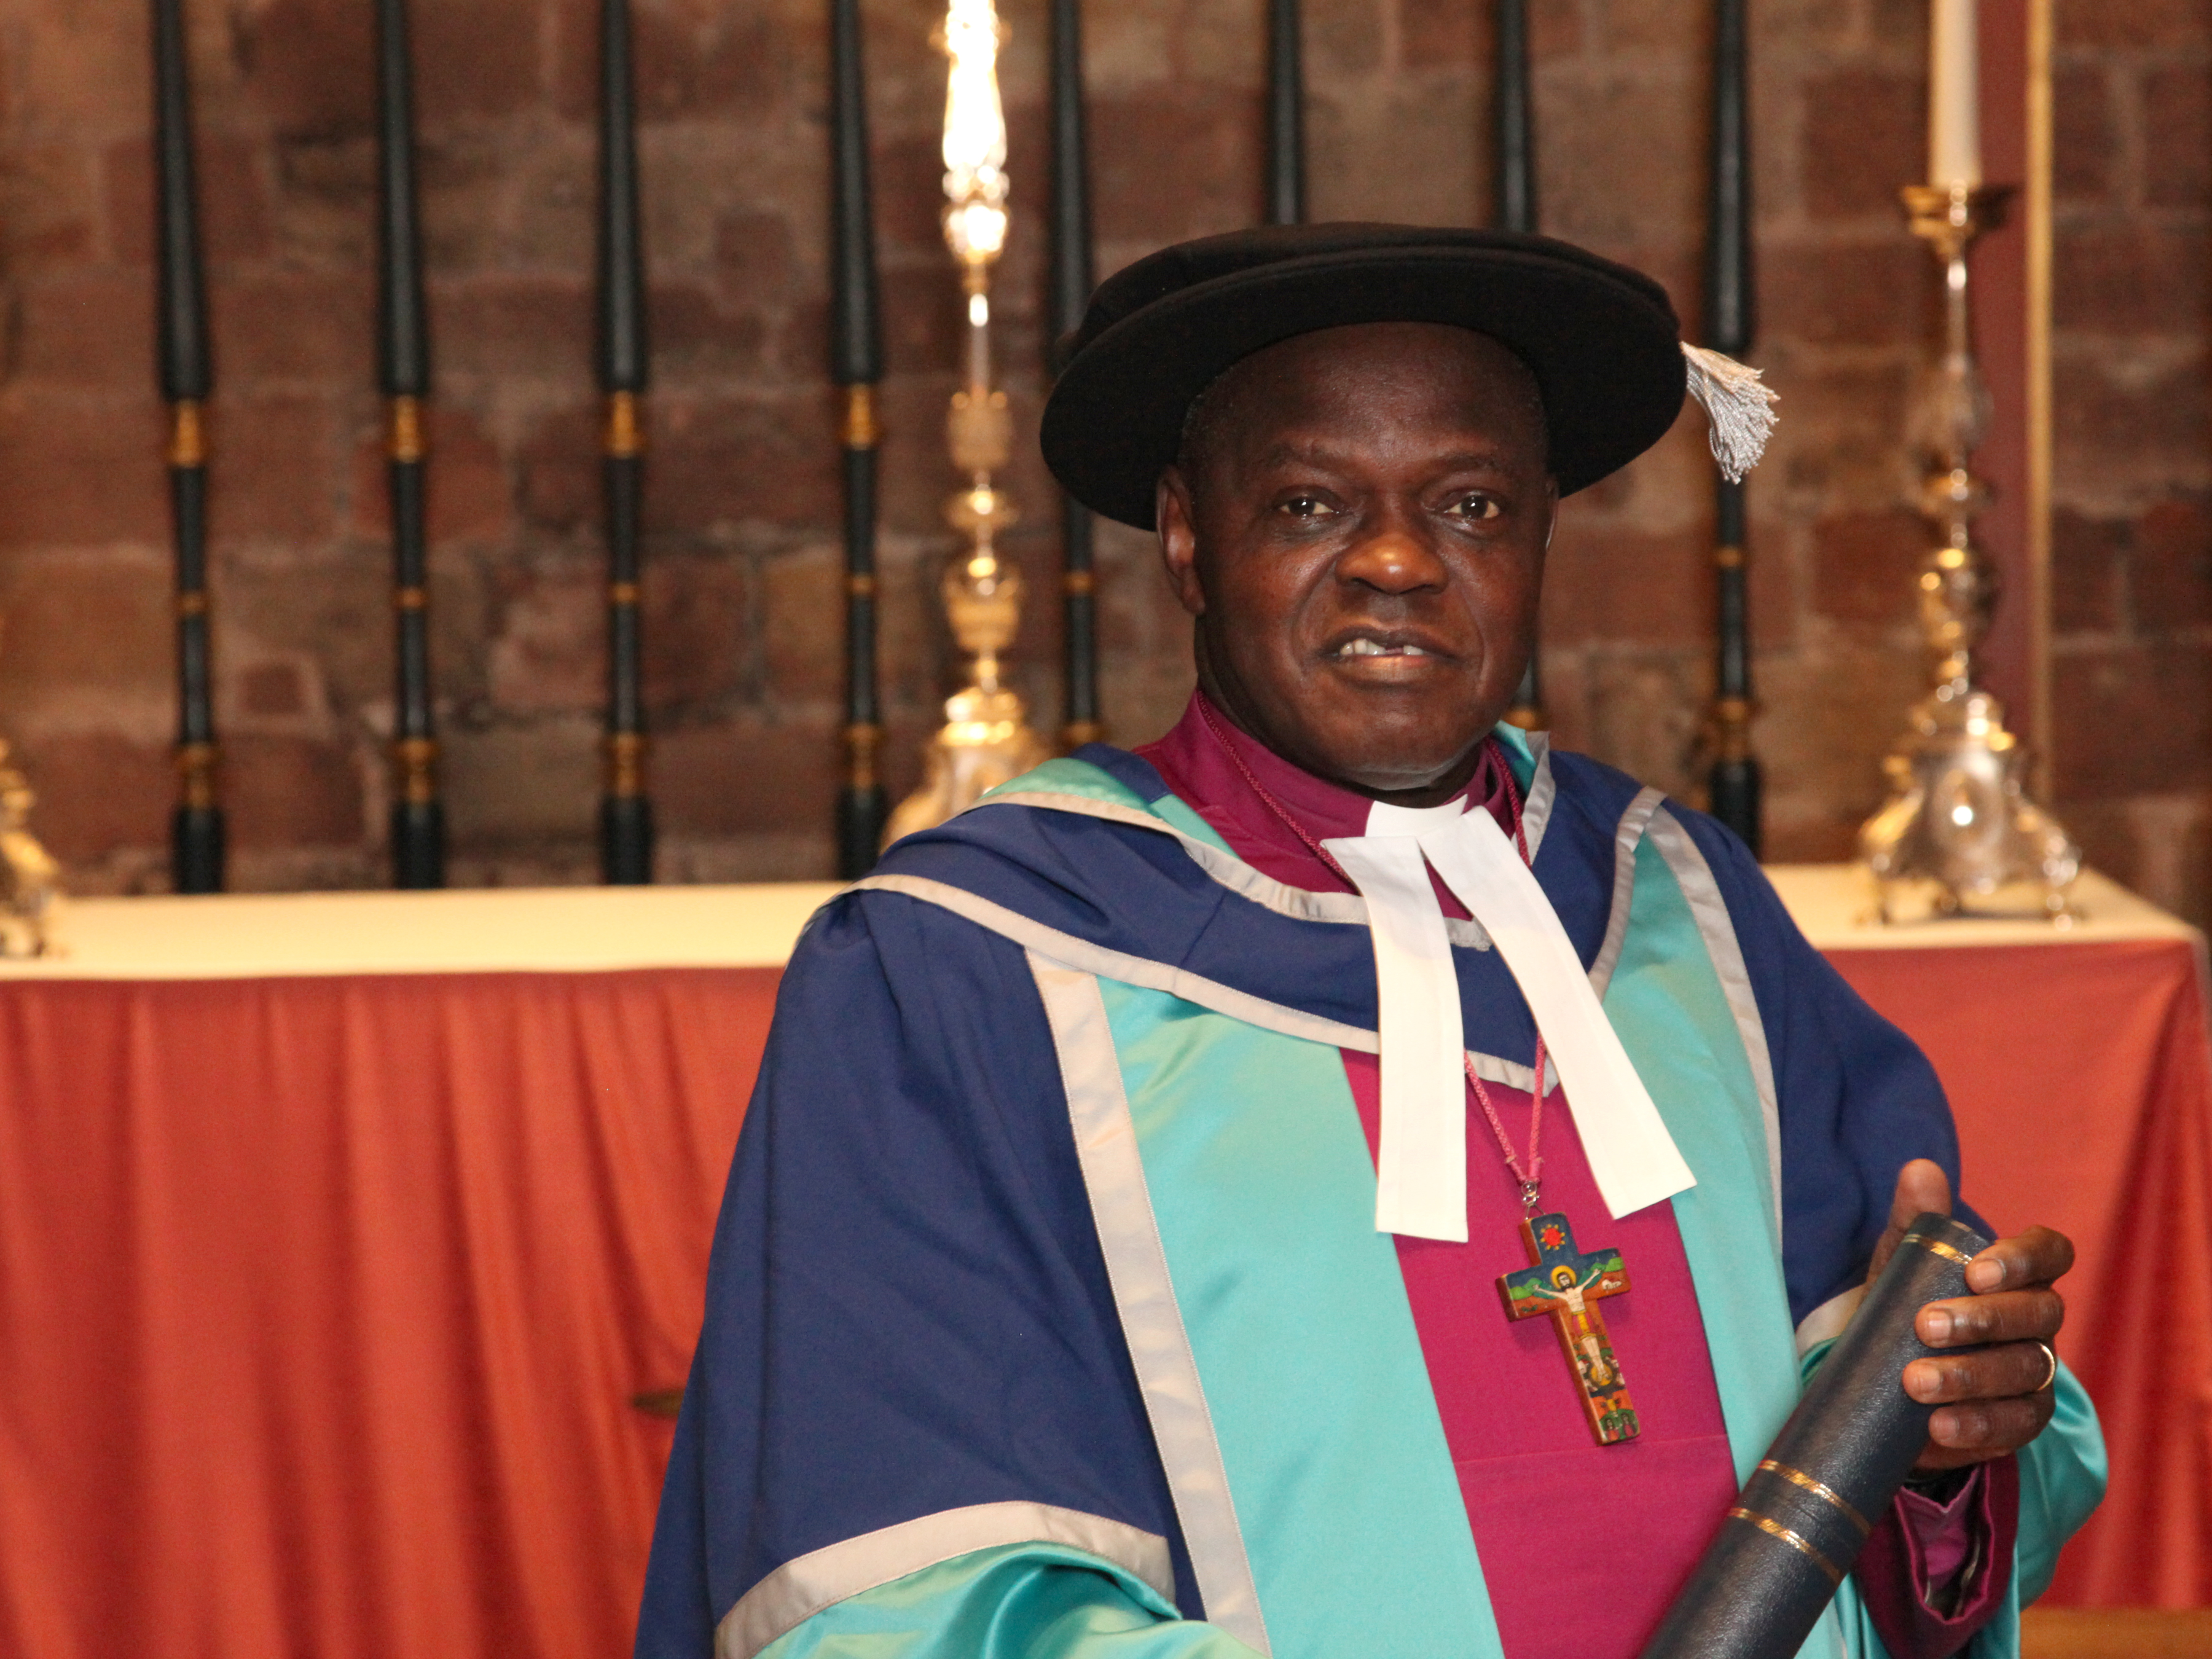 First honorary doctorate awarded to the Chancellor, Dr John Sentamu, on 26 November 2019